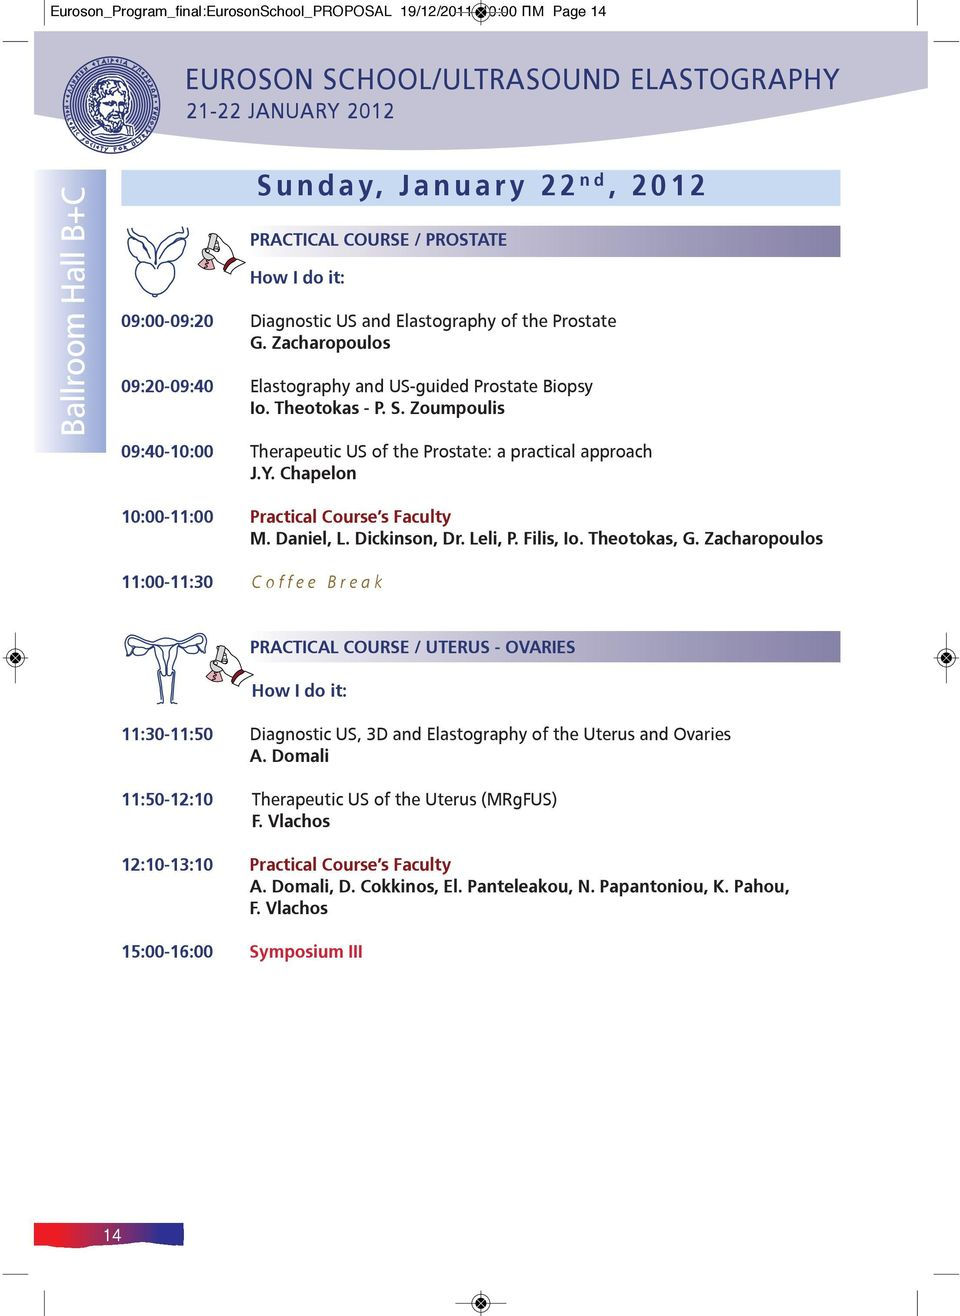 Zoumpoulis 09:40-10:00 Therapeutic US of the Prostate: a practical approach J.Y. Chapelon 10:00-11:00 Practical Course s Faculty M. Daniel, L. Dickinson, Dr. Leli, P. Filis, Io. Theotokas, G.